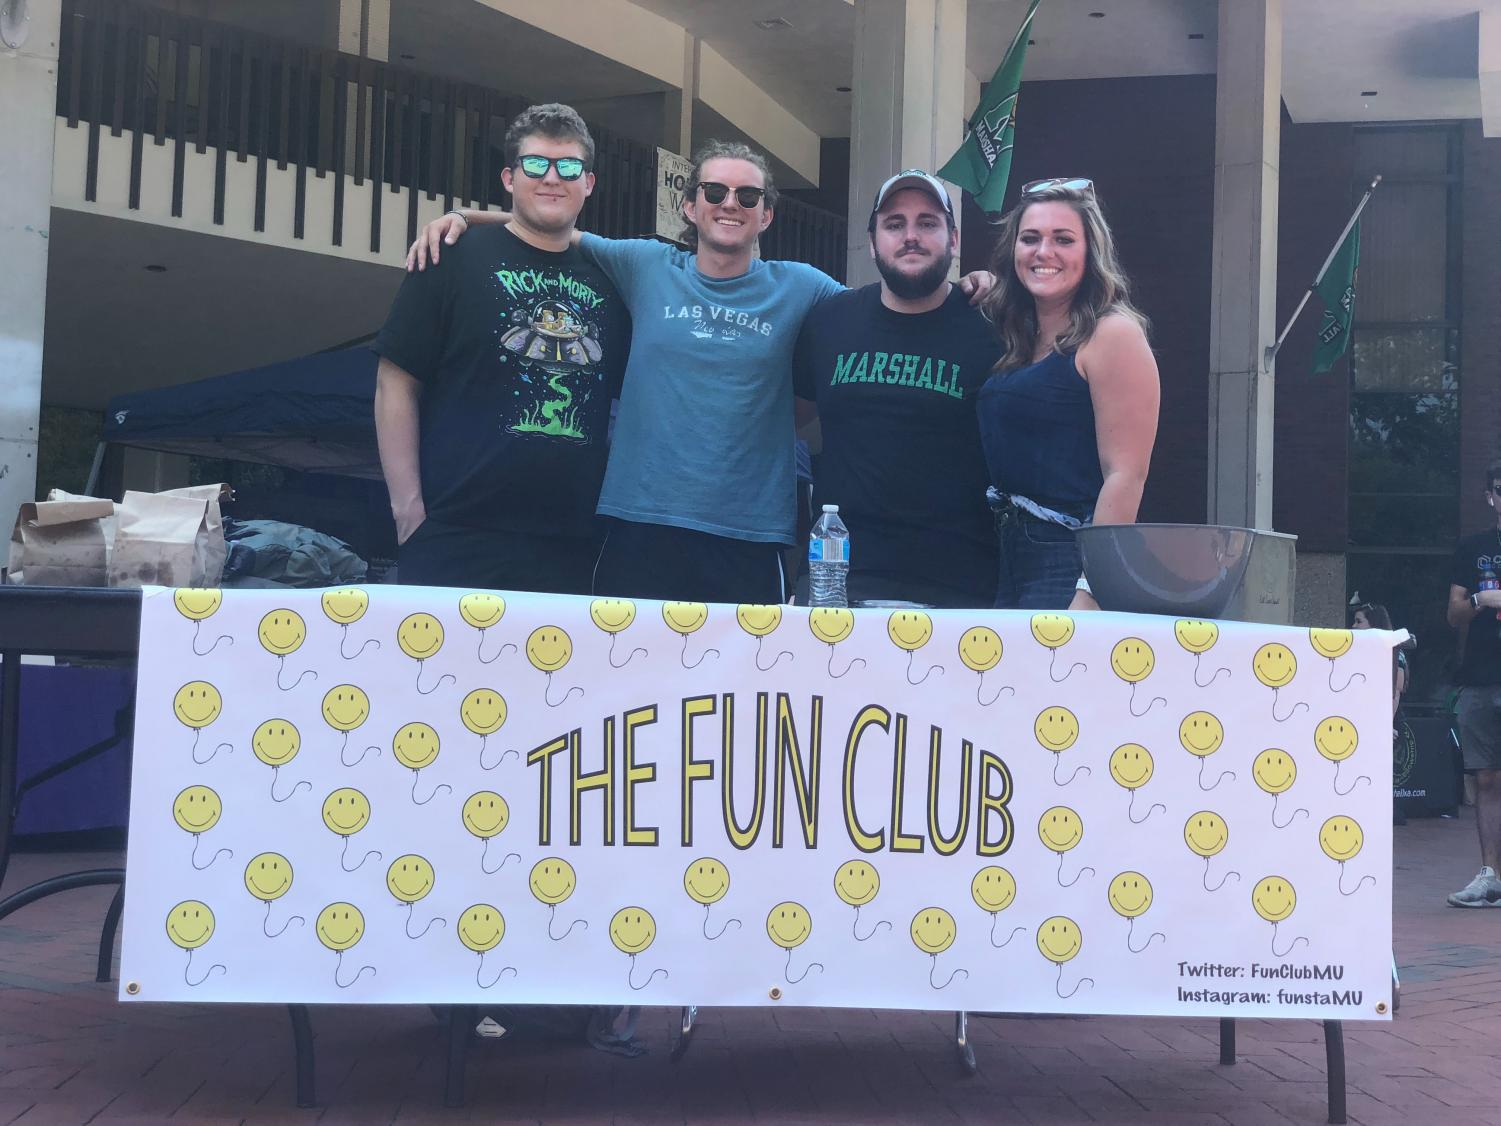 Marshall students Adam Bailey, Kane Morrone, Todd Turley and Madison Barker pose for a photo Wednesday, Sept. 11 at The Fun Club table during the university's Student Involvement & Organization Fair on the Memorial Student Center Plaza.